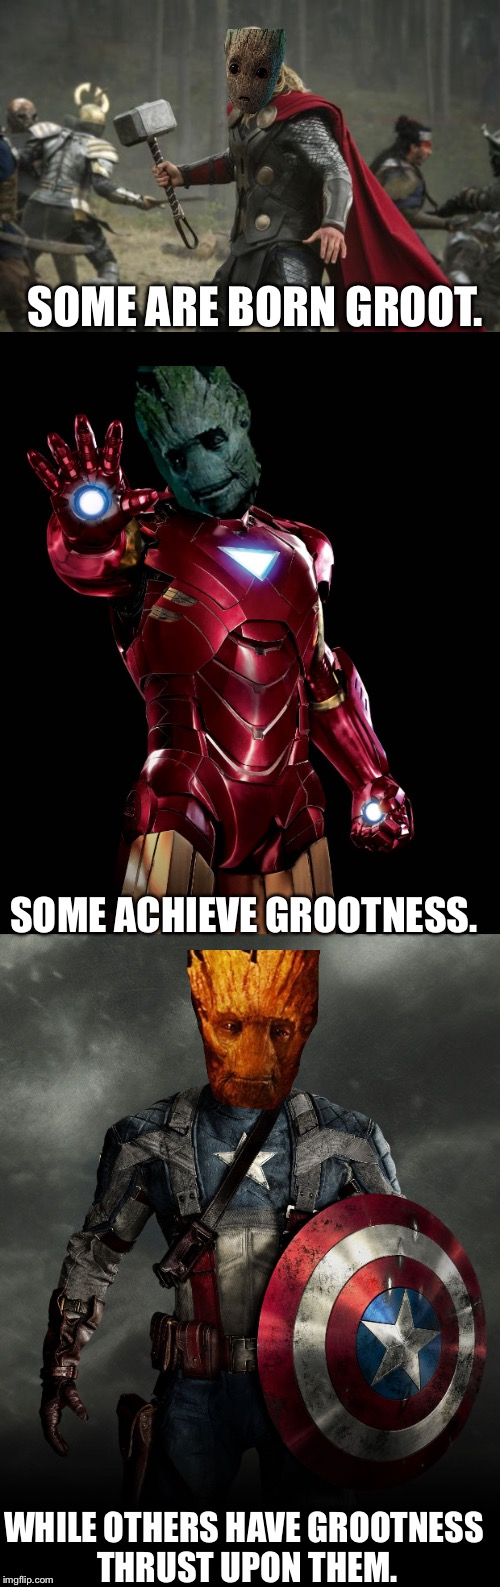 Grootness | SOME ARE BORN GROOT. SOME ACHIEVE GROOTNESS. WHILE OTHERS HAVE GROOTNESS THRUST UPON THEM. | image tagged in groot,memes,grootness | made w/ Imgflip meme maker